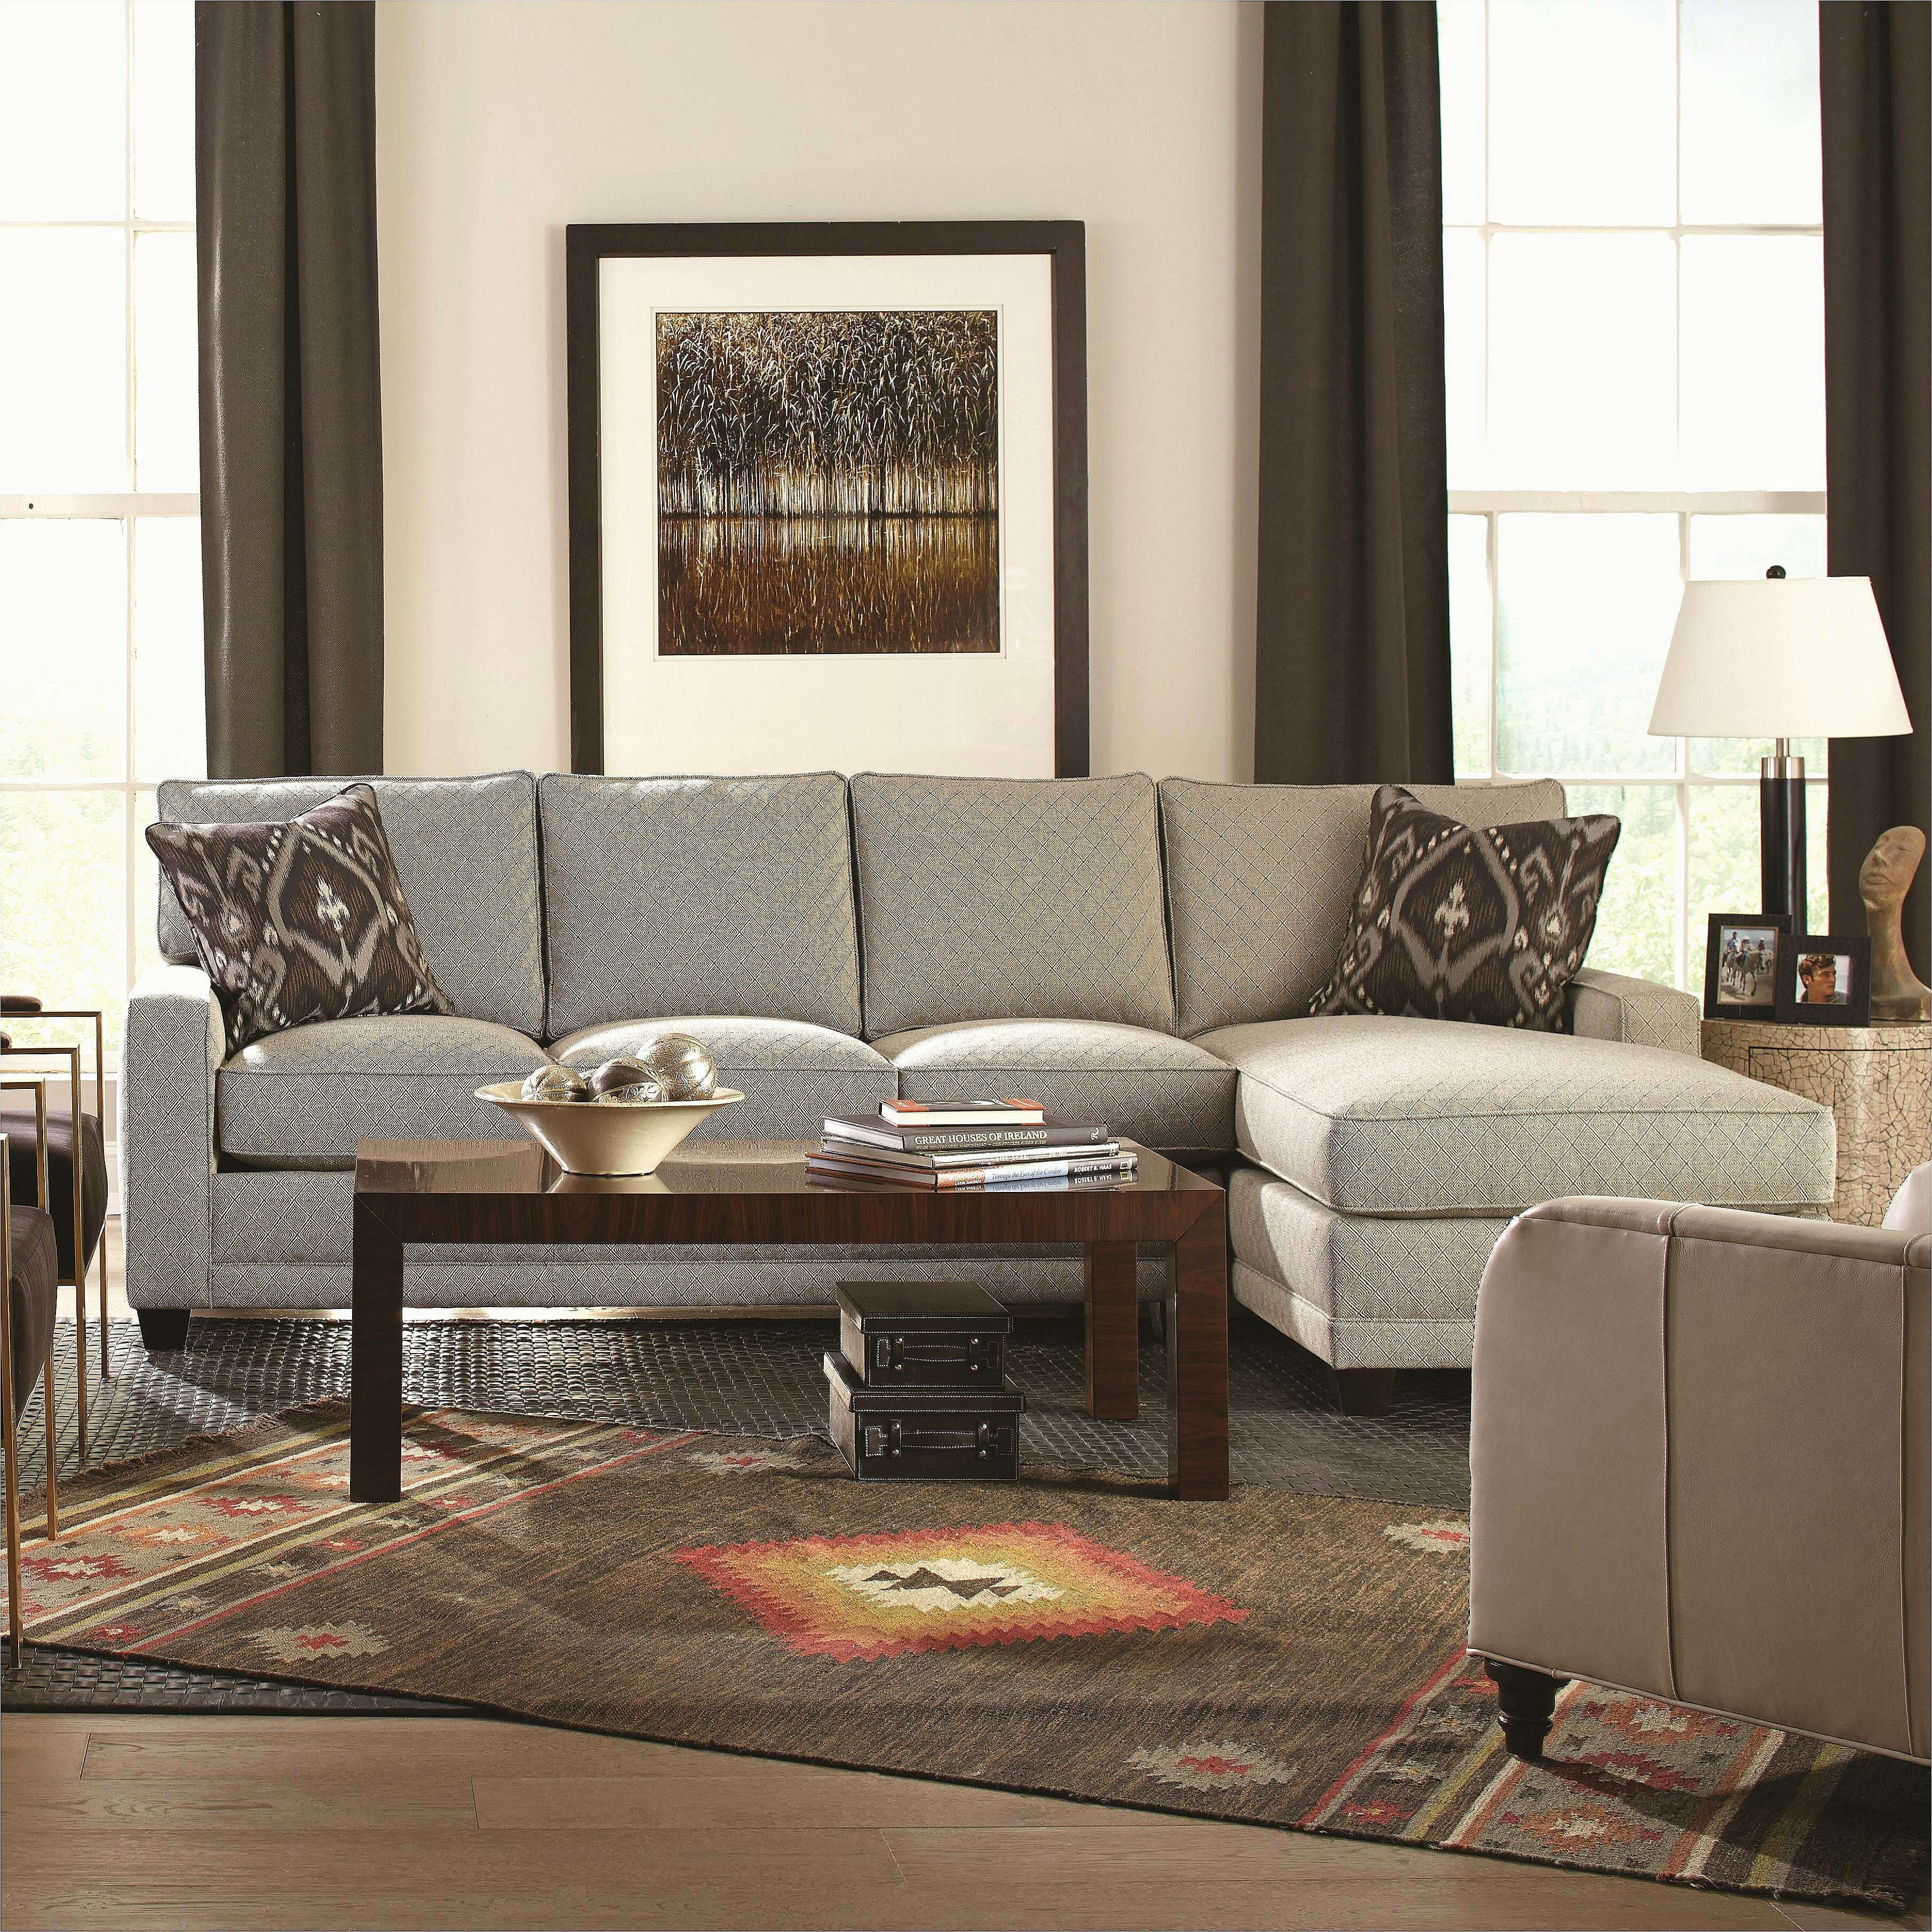 Sofa Country Style Living Room Cottage – Boxdsg (Image 23 of 25)